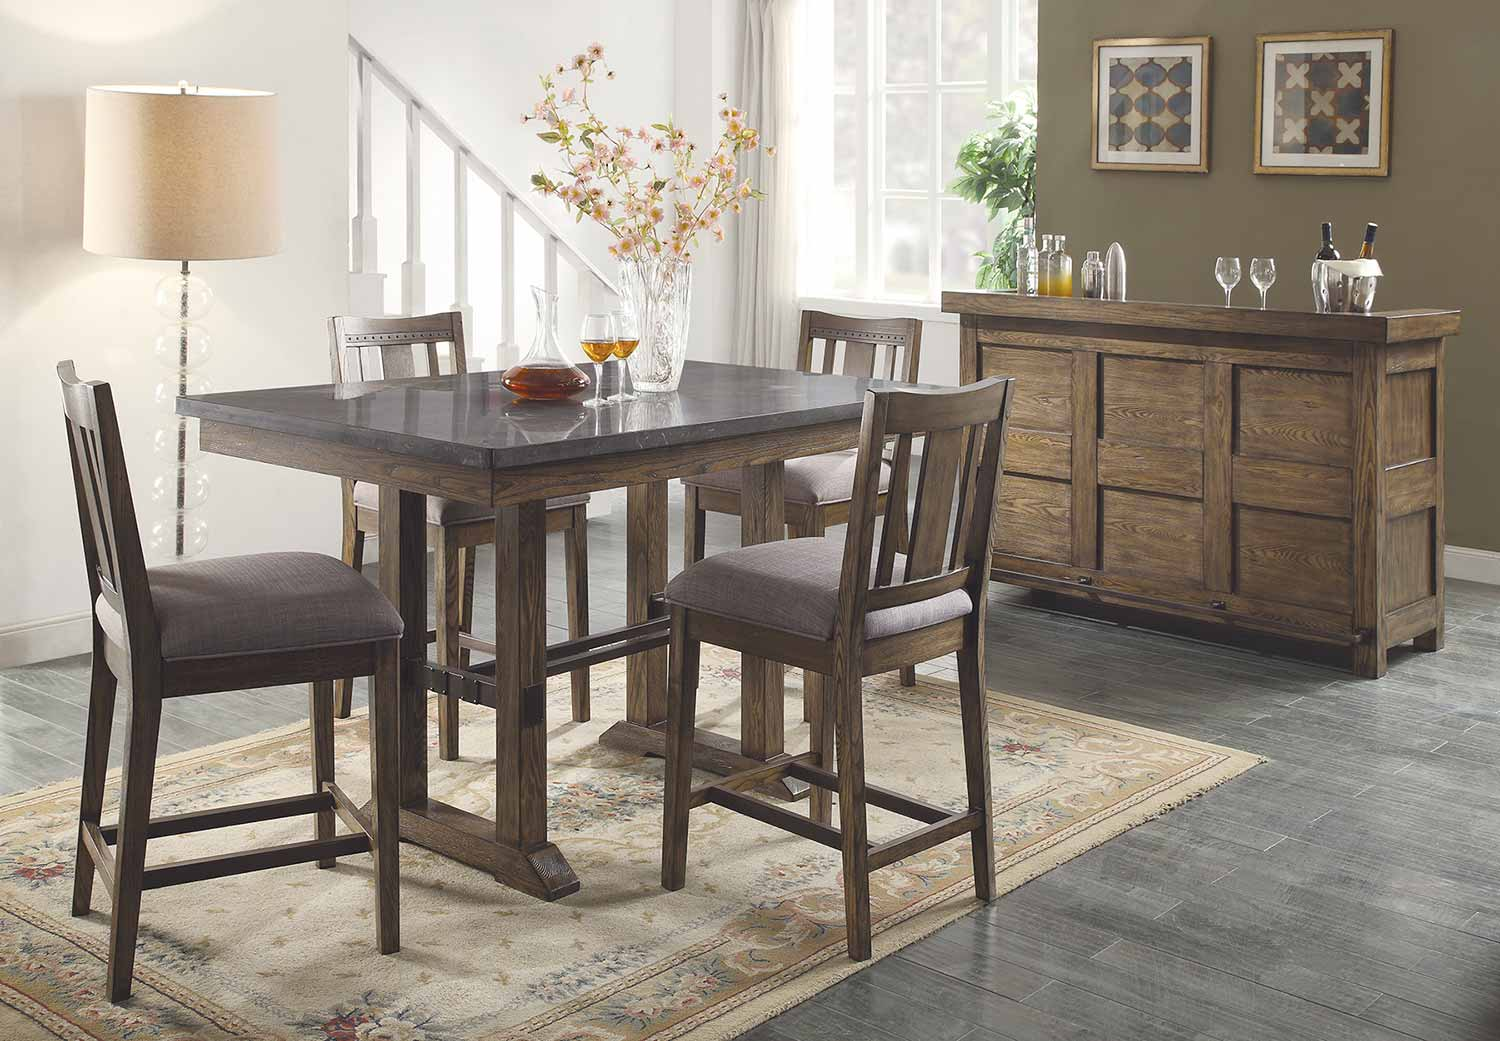 Coaster Willowbrook Counter Height Dining Set - Rustic Ash/Gunmetal